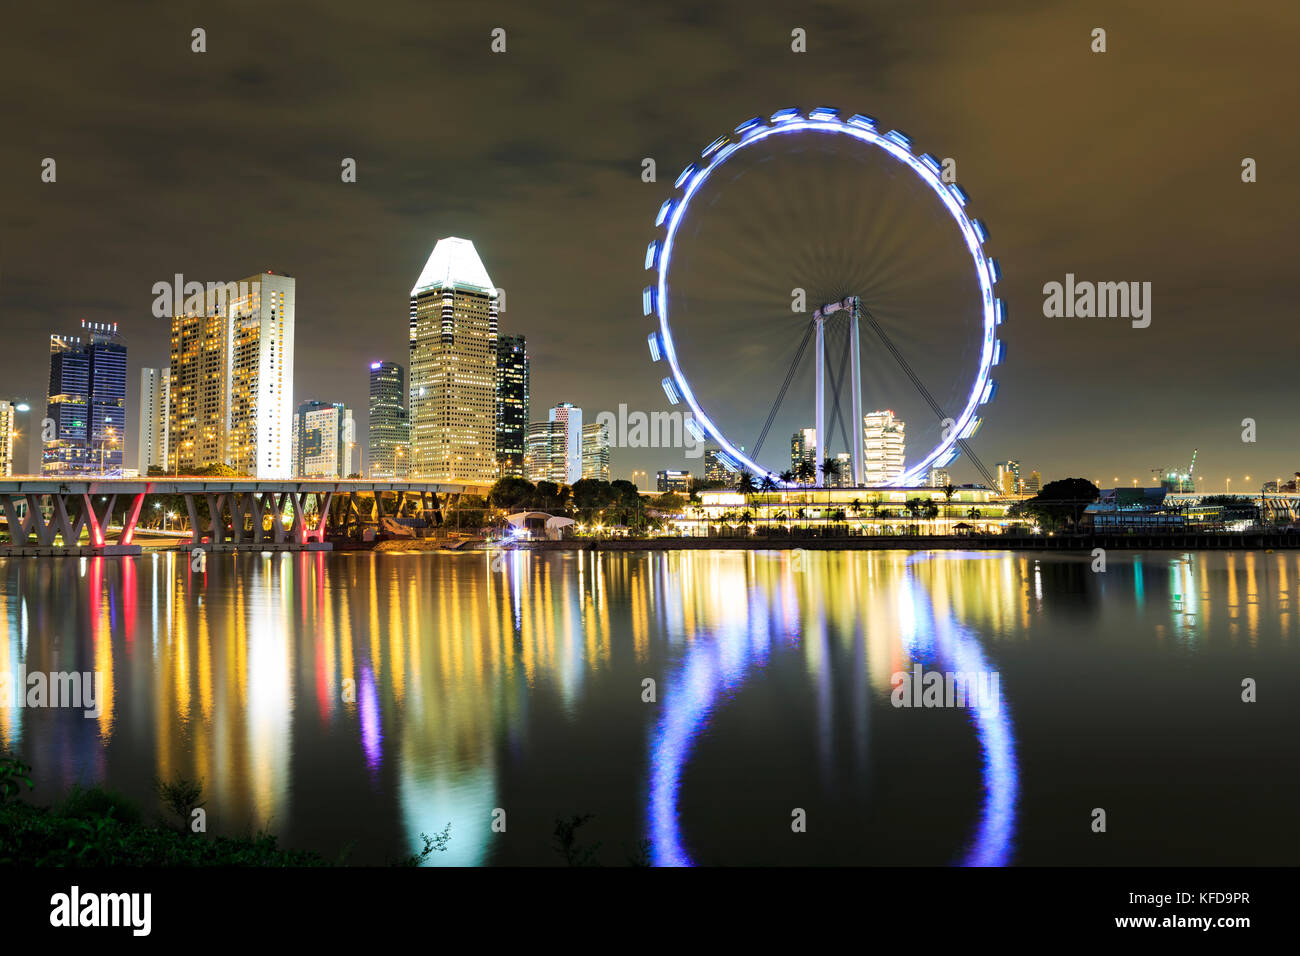 Marina Bay view with Singapur Flyer and skyline of Singapore town by night - Stock Image